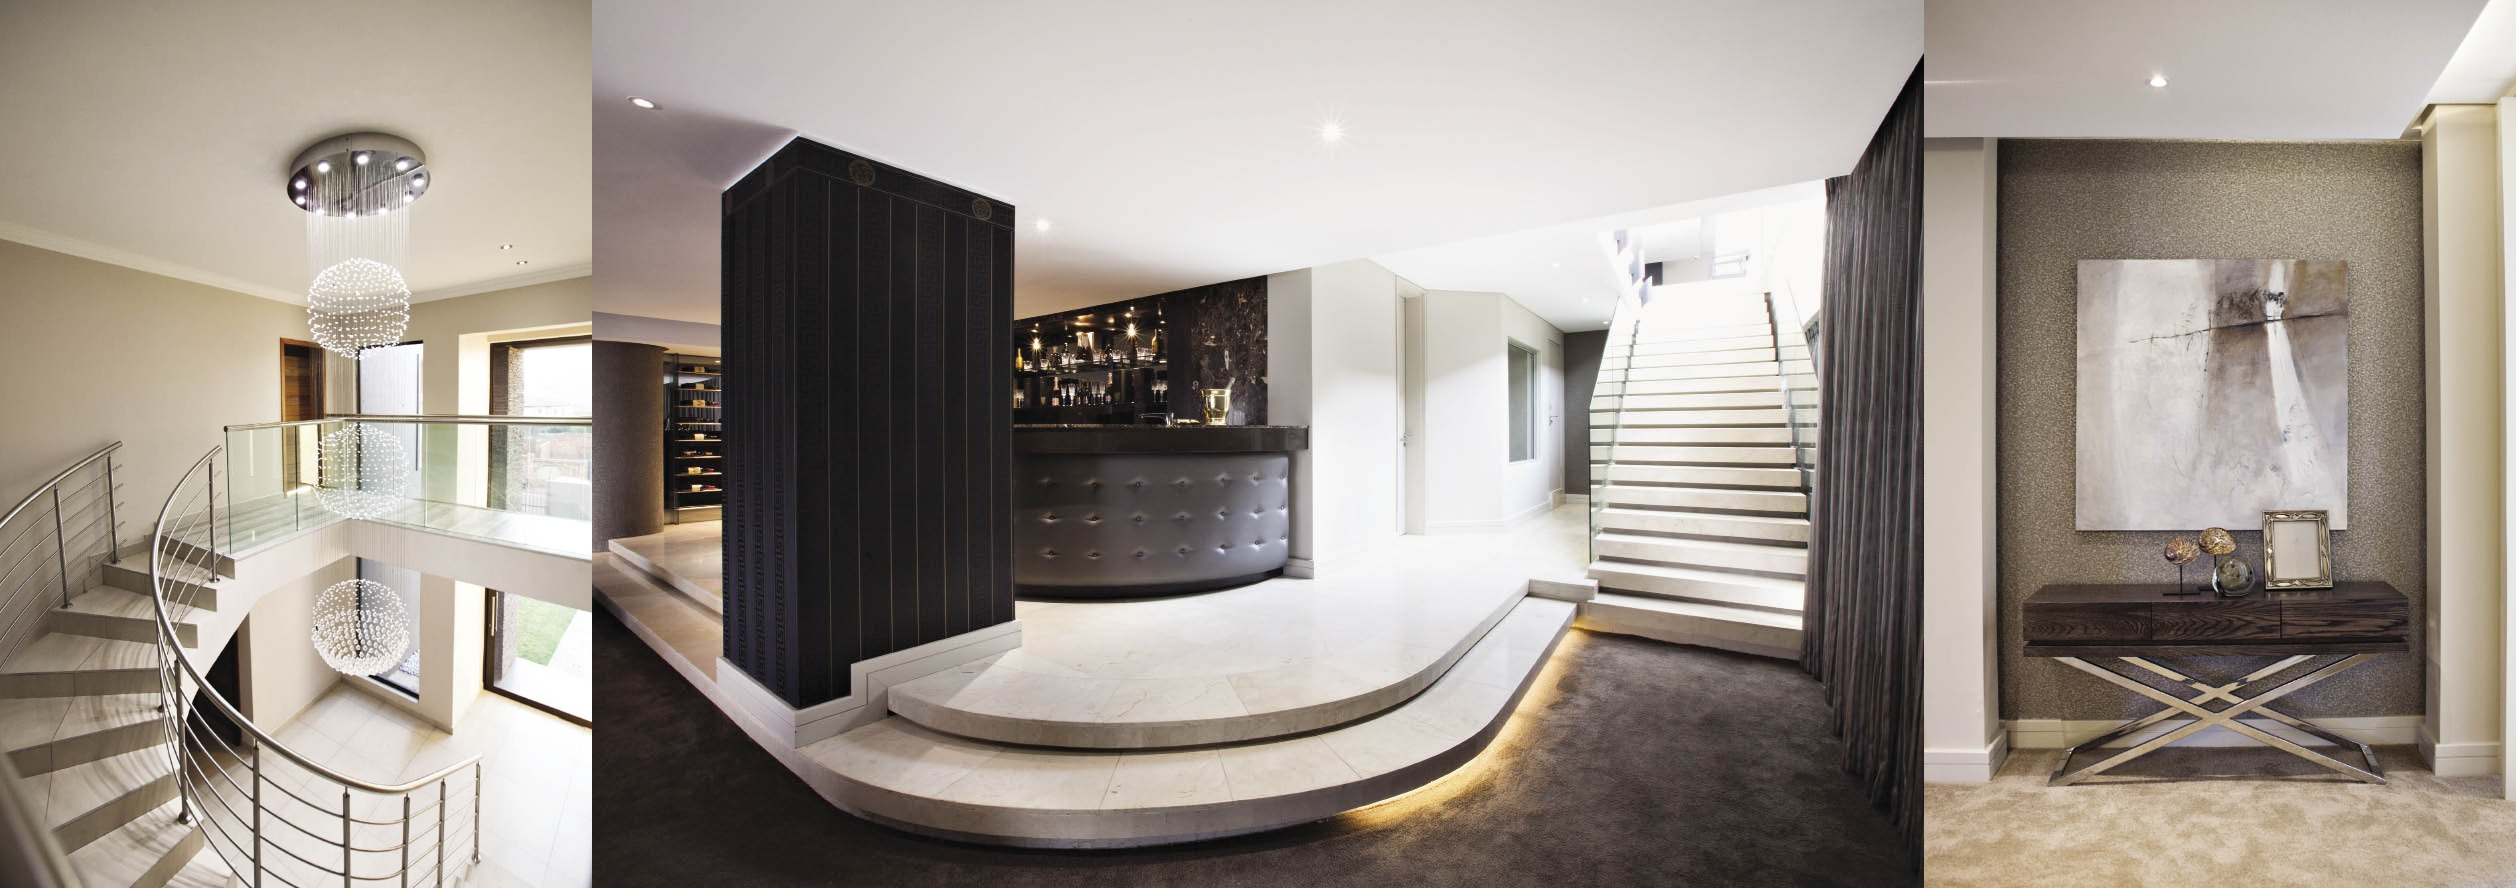 How To Design An Entrance Hall